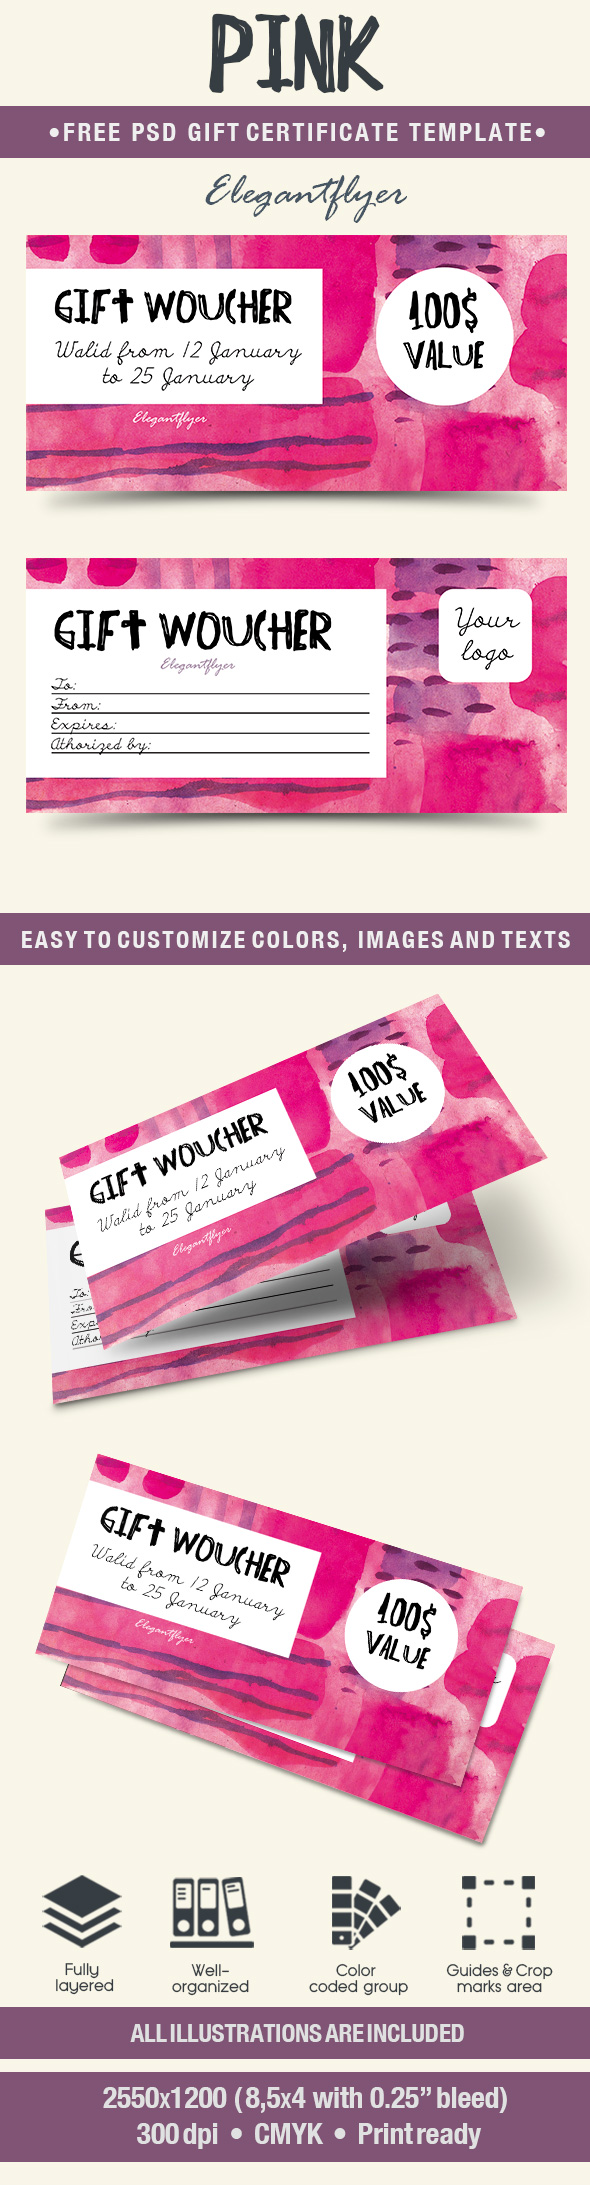 Pink – Free Gift Certificate PSD Template